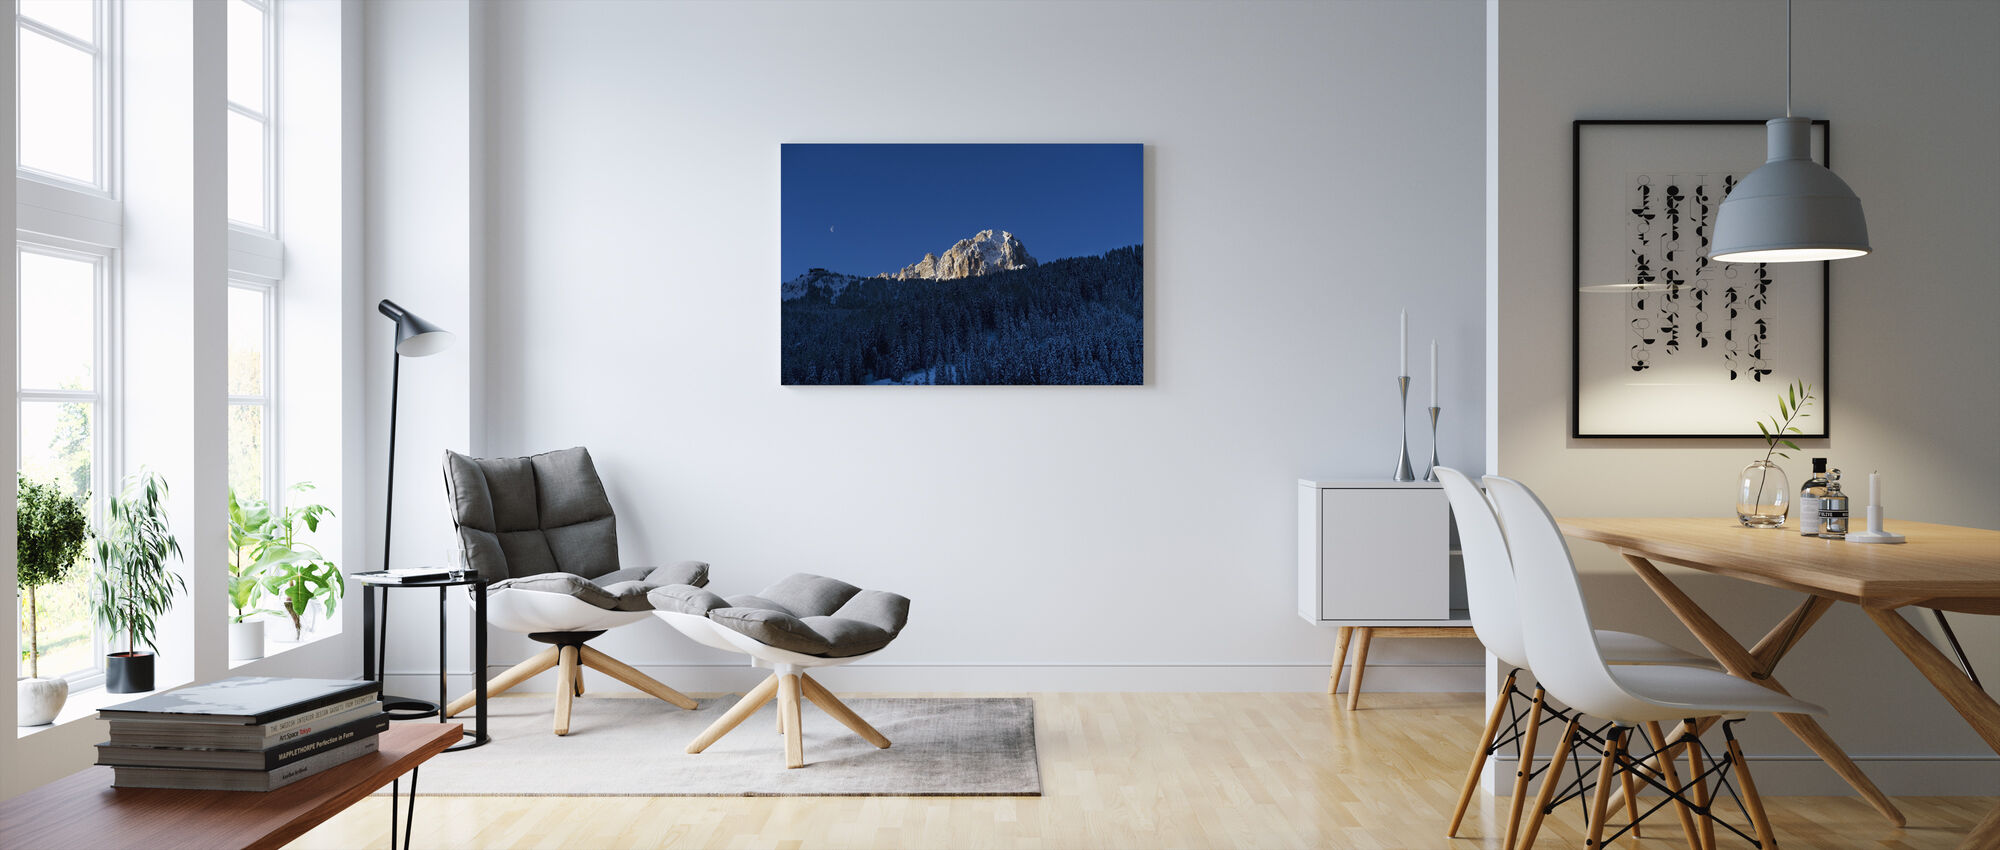 Val Gardena, Dolomites in Italy - Canvas print - Living Room